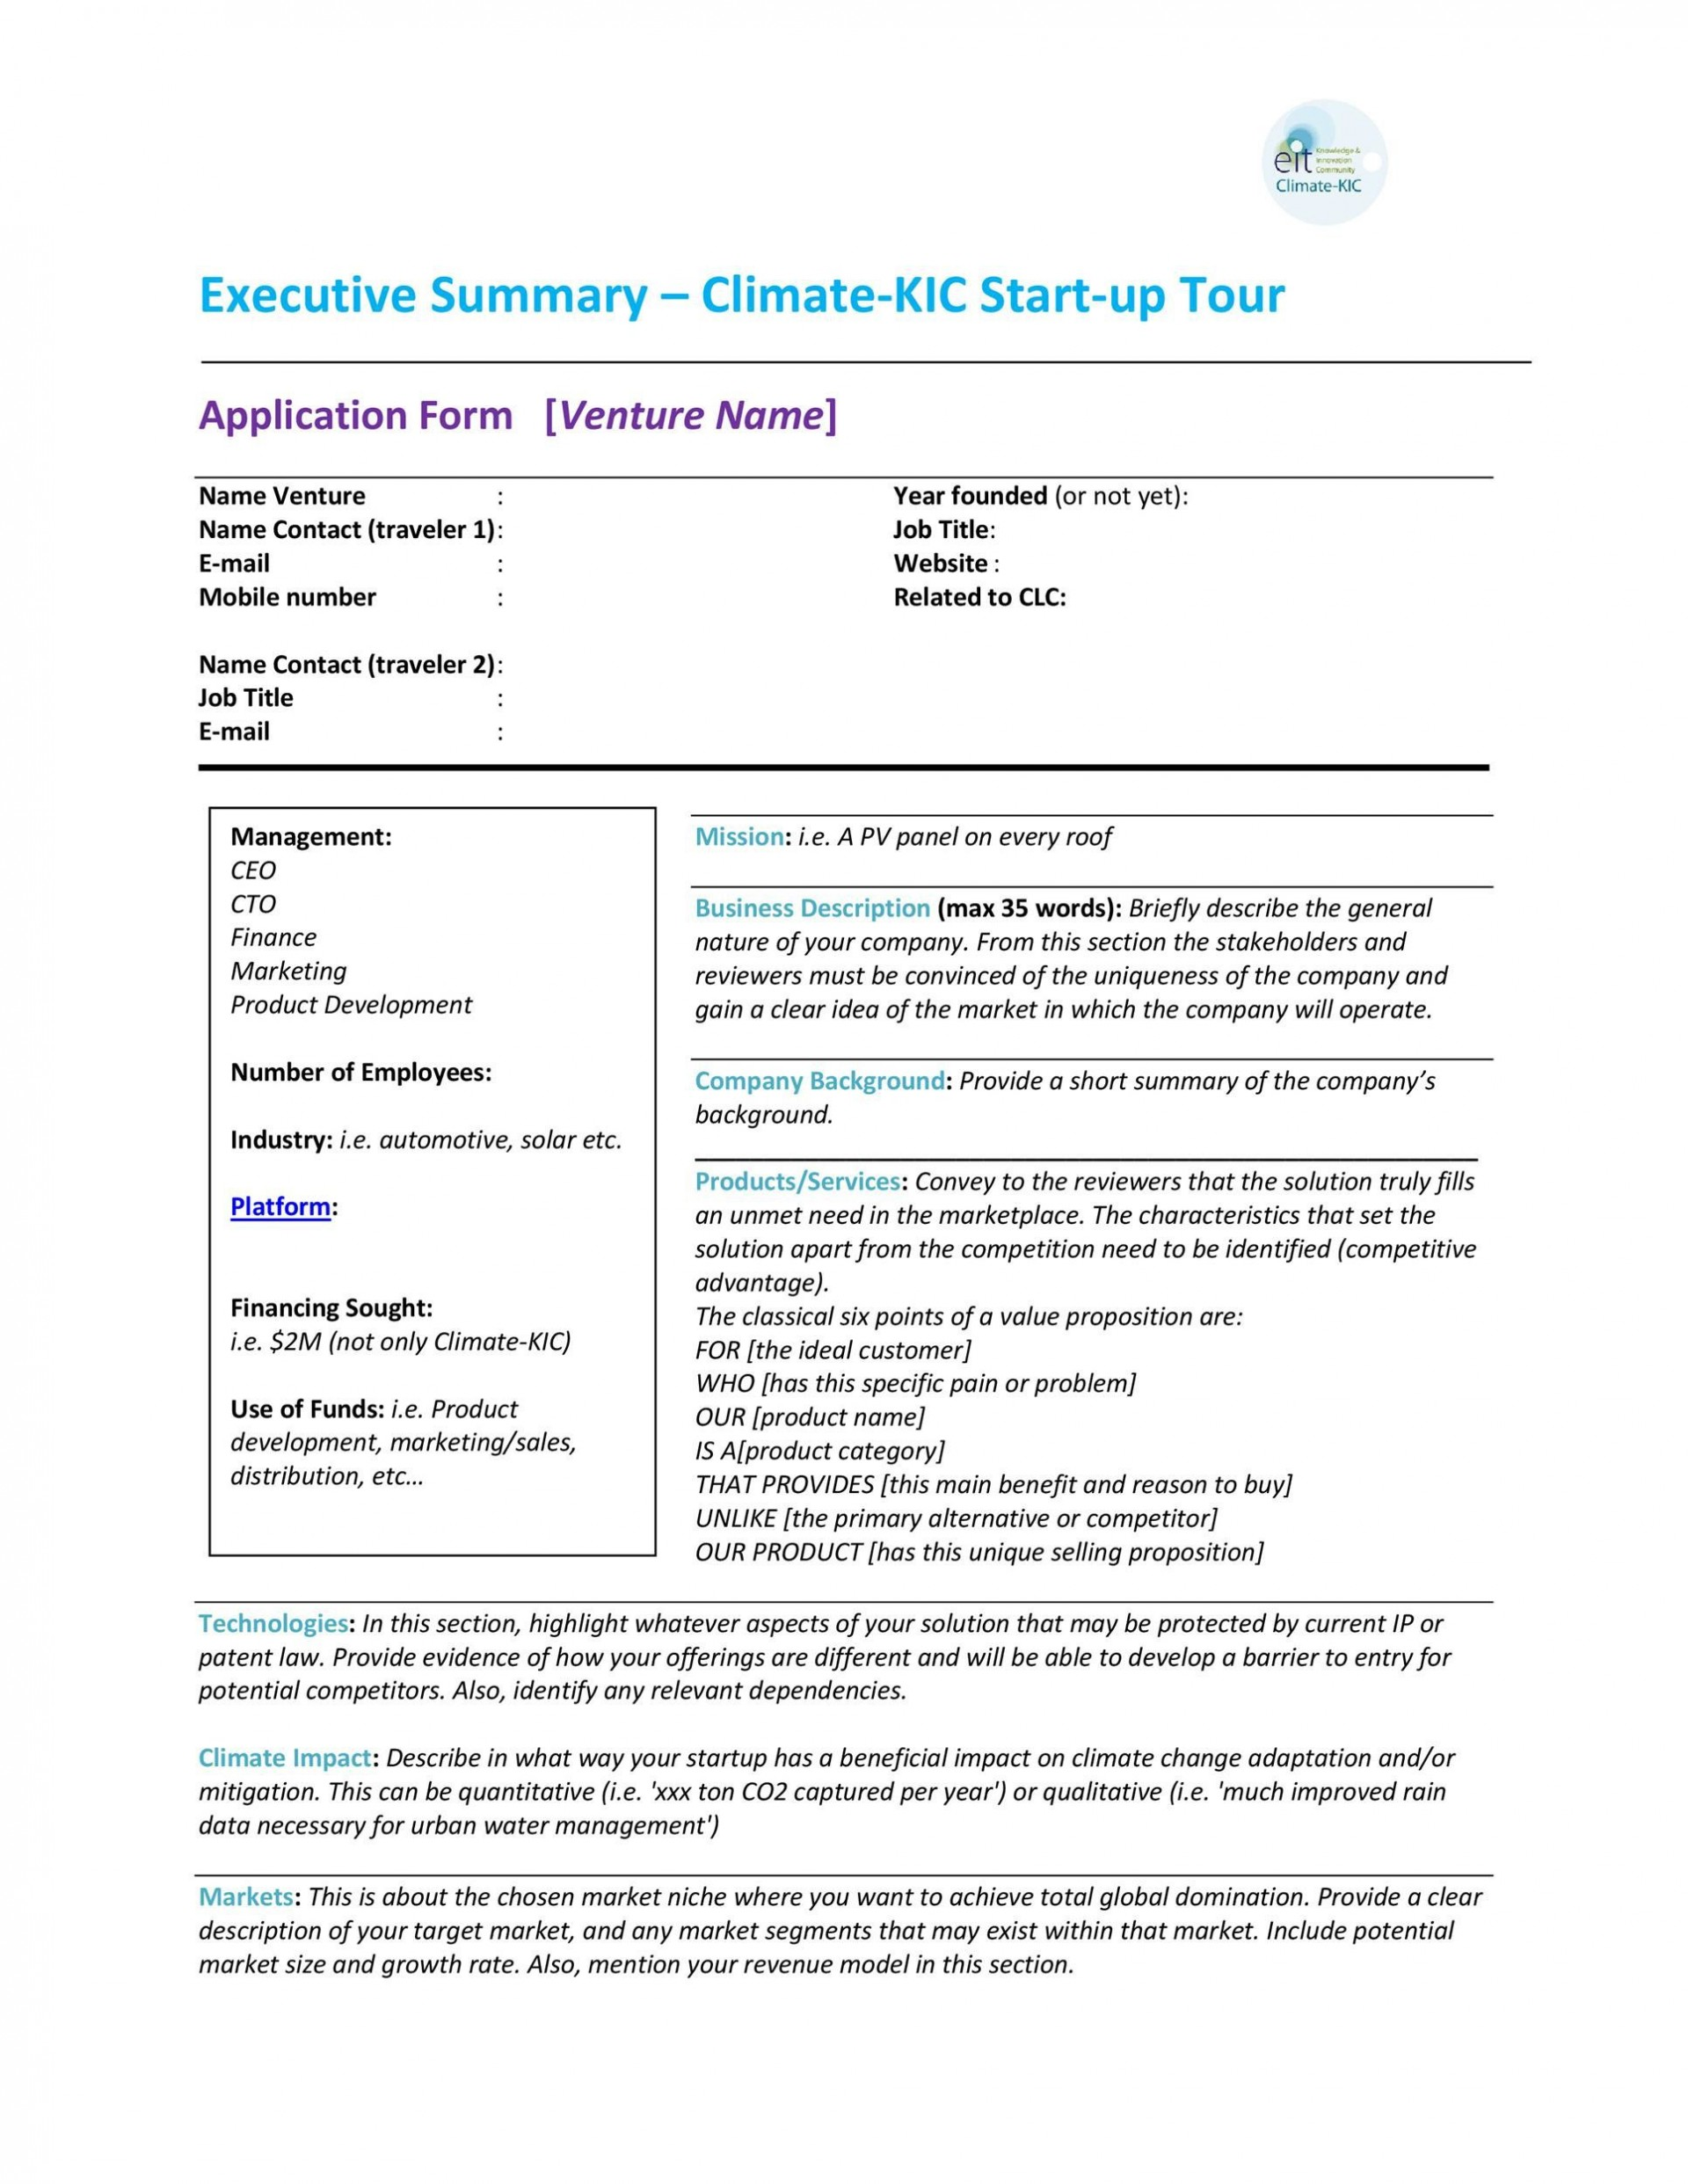 007 Top Executive Summary Report Word Template Image 1920